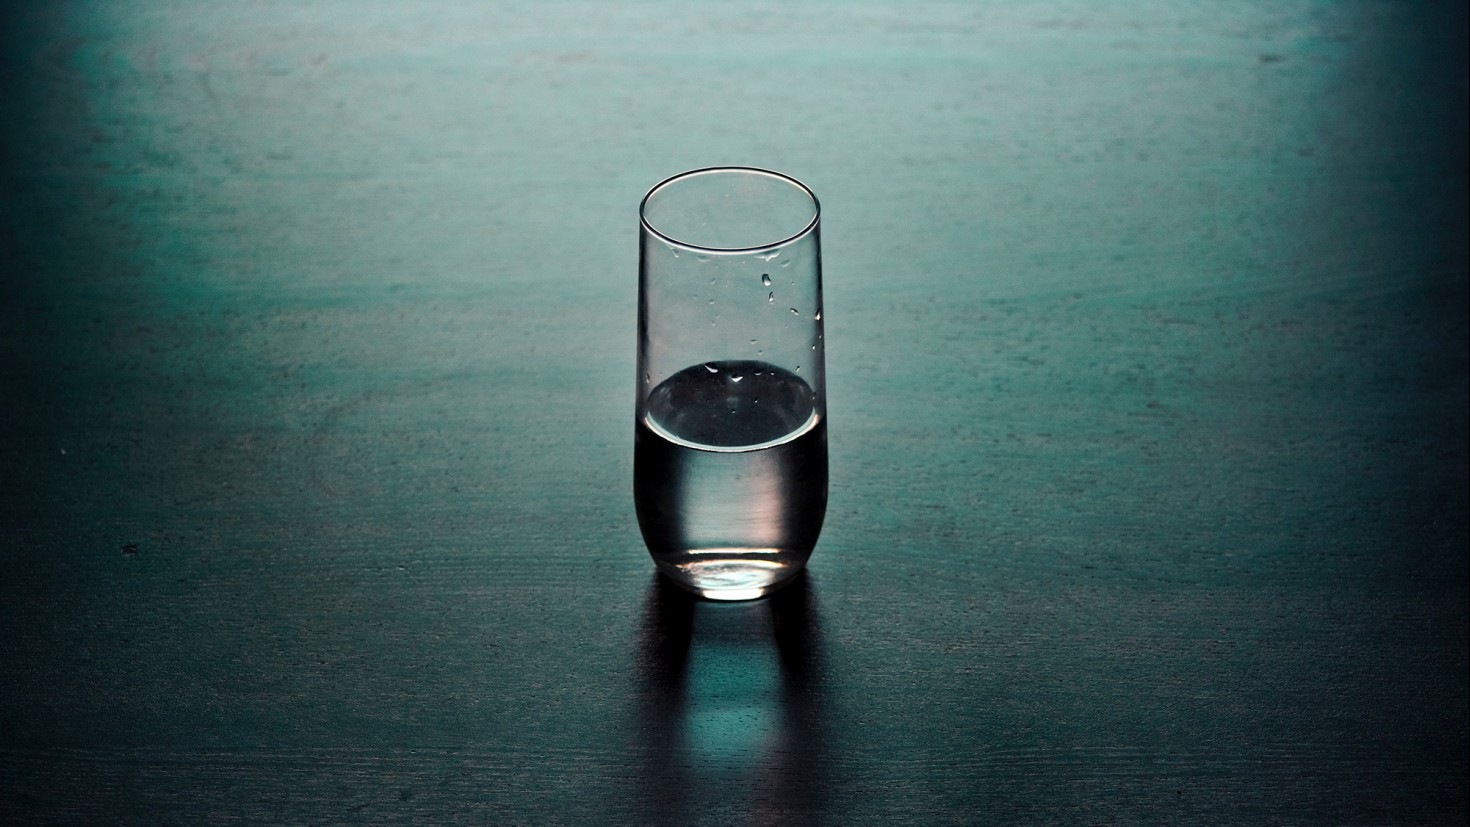 YOU MIGHT THINK OF ANNUAL EMISSIONS AS DROPS OF WATER FALLING INTO A GLASS, AND ACCUMULATED EMISSIONS AS THE AMOUNT THAT'S IN THE GLASS. WHAT WE'VE BEEN DOING FOR MOST OF HISTORY IS INCREASING THE RATE AT WHICH THOSE DROPS FALL INTO THE GLASS, FILLING IT UP FASTER: ACCELERATING.